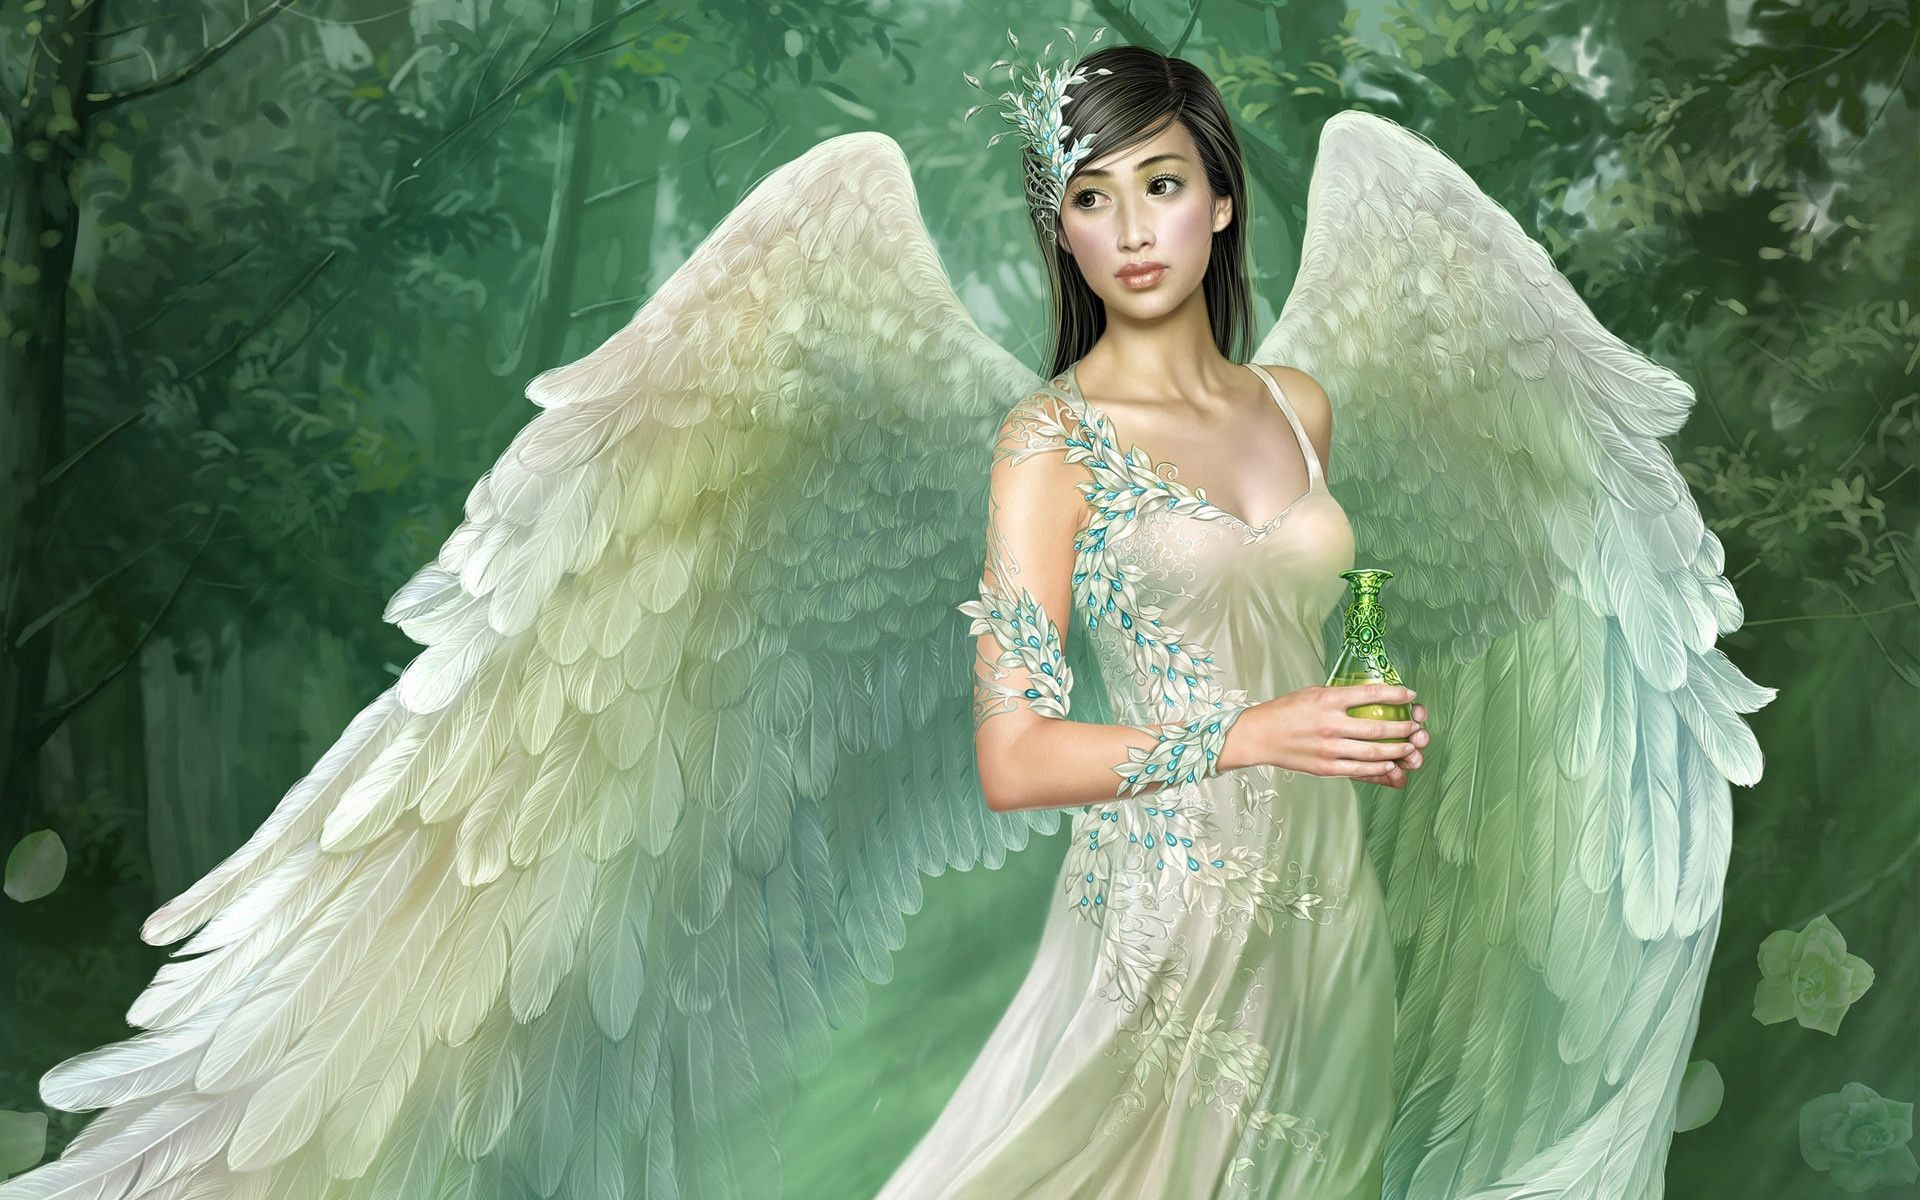 Pretty Fairy Wallpapers Group 1280 1024 Beautiful Fairies Wallpapers Adorable Wallpapers Angel Wallpaper Fairy Wallpaper Angel Pictures